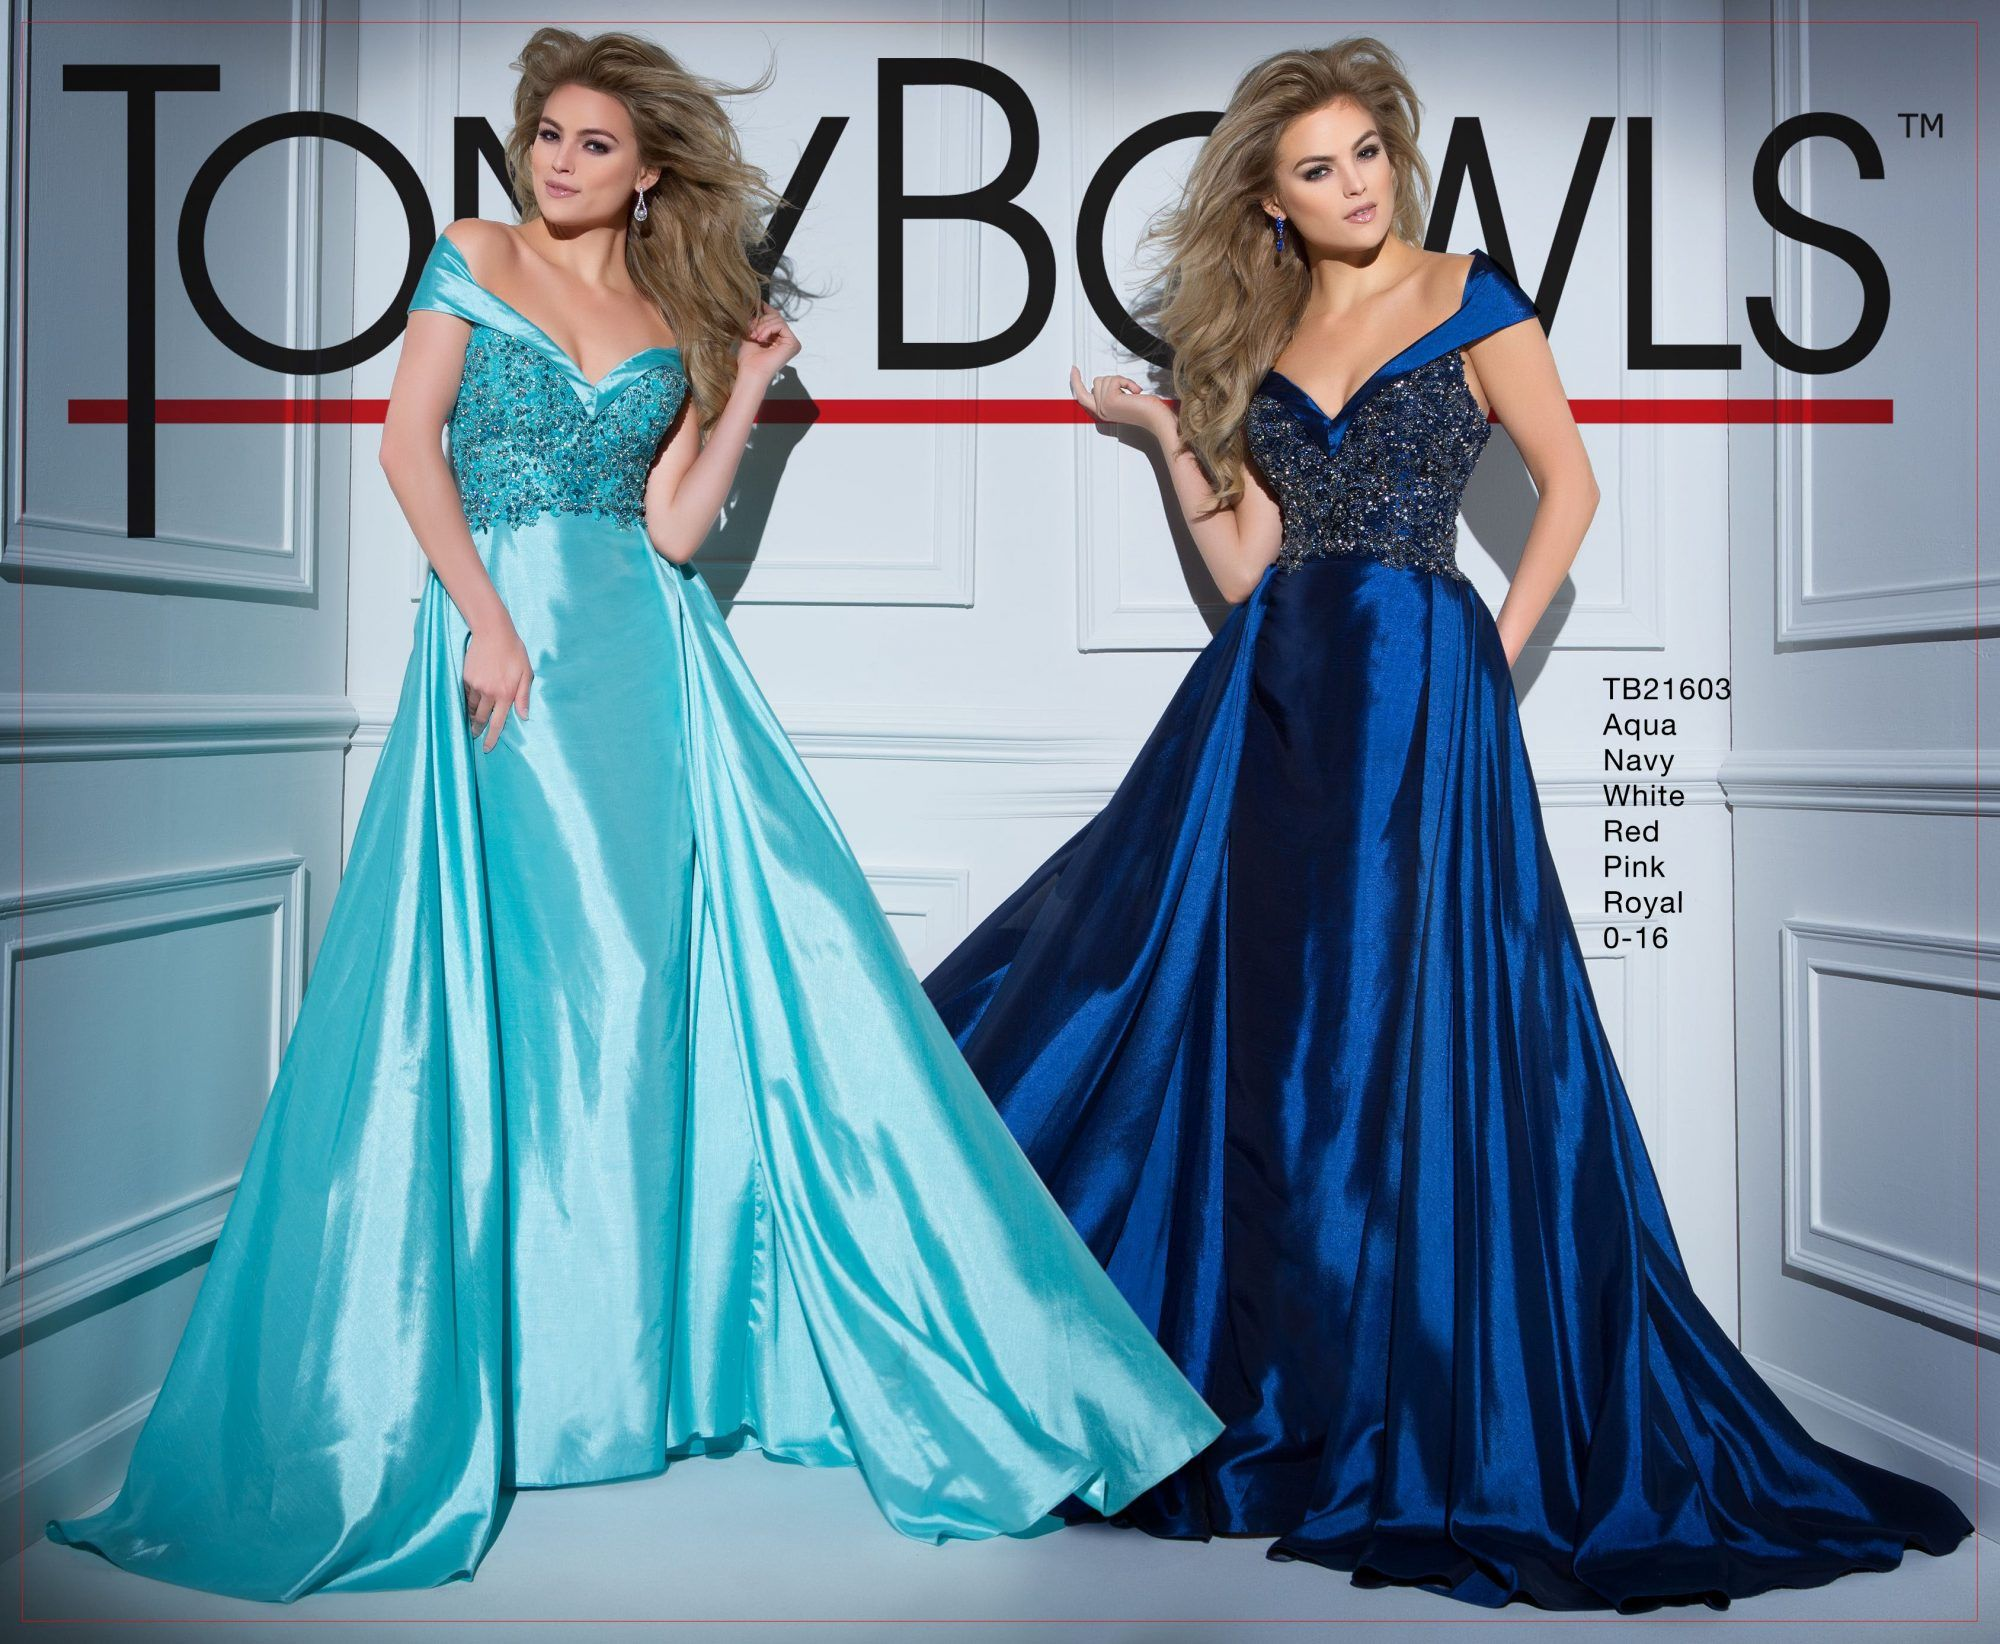 a4ae839579 Tony Bowls Style TB21603 - View the Tony Bowls Collection now and contact a  retailer near you to order the perfect designer dress for…